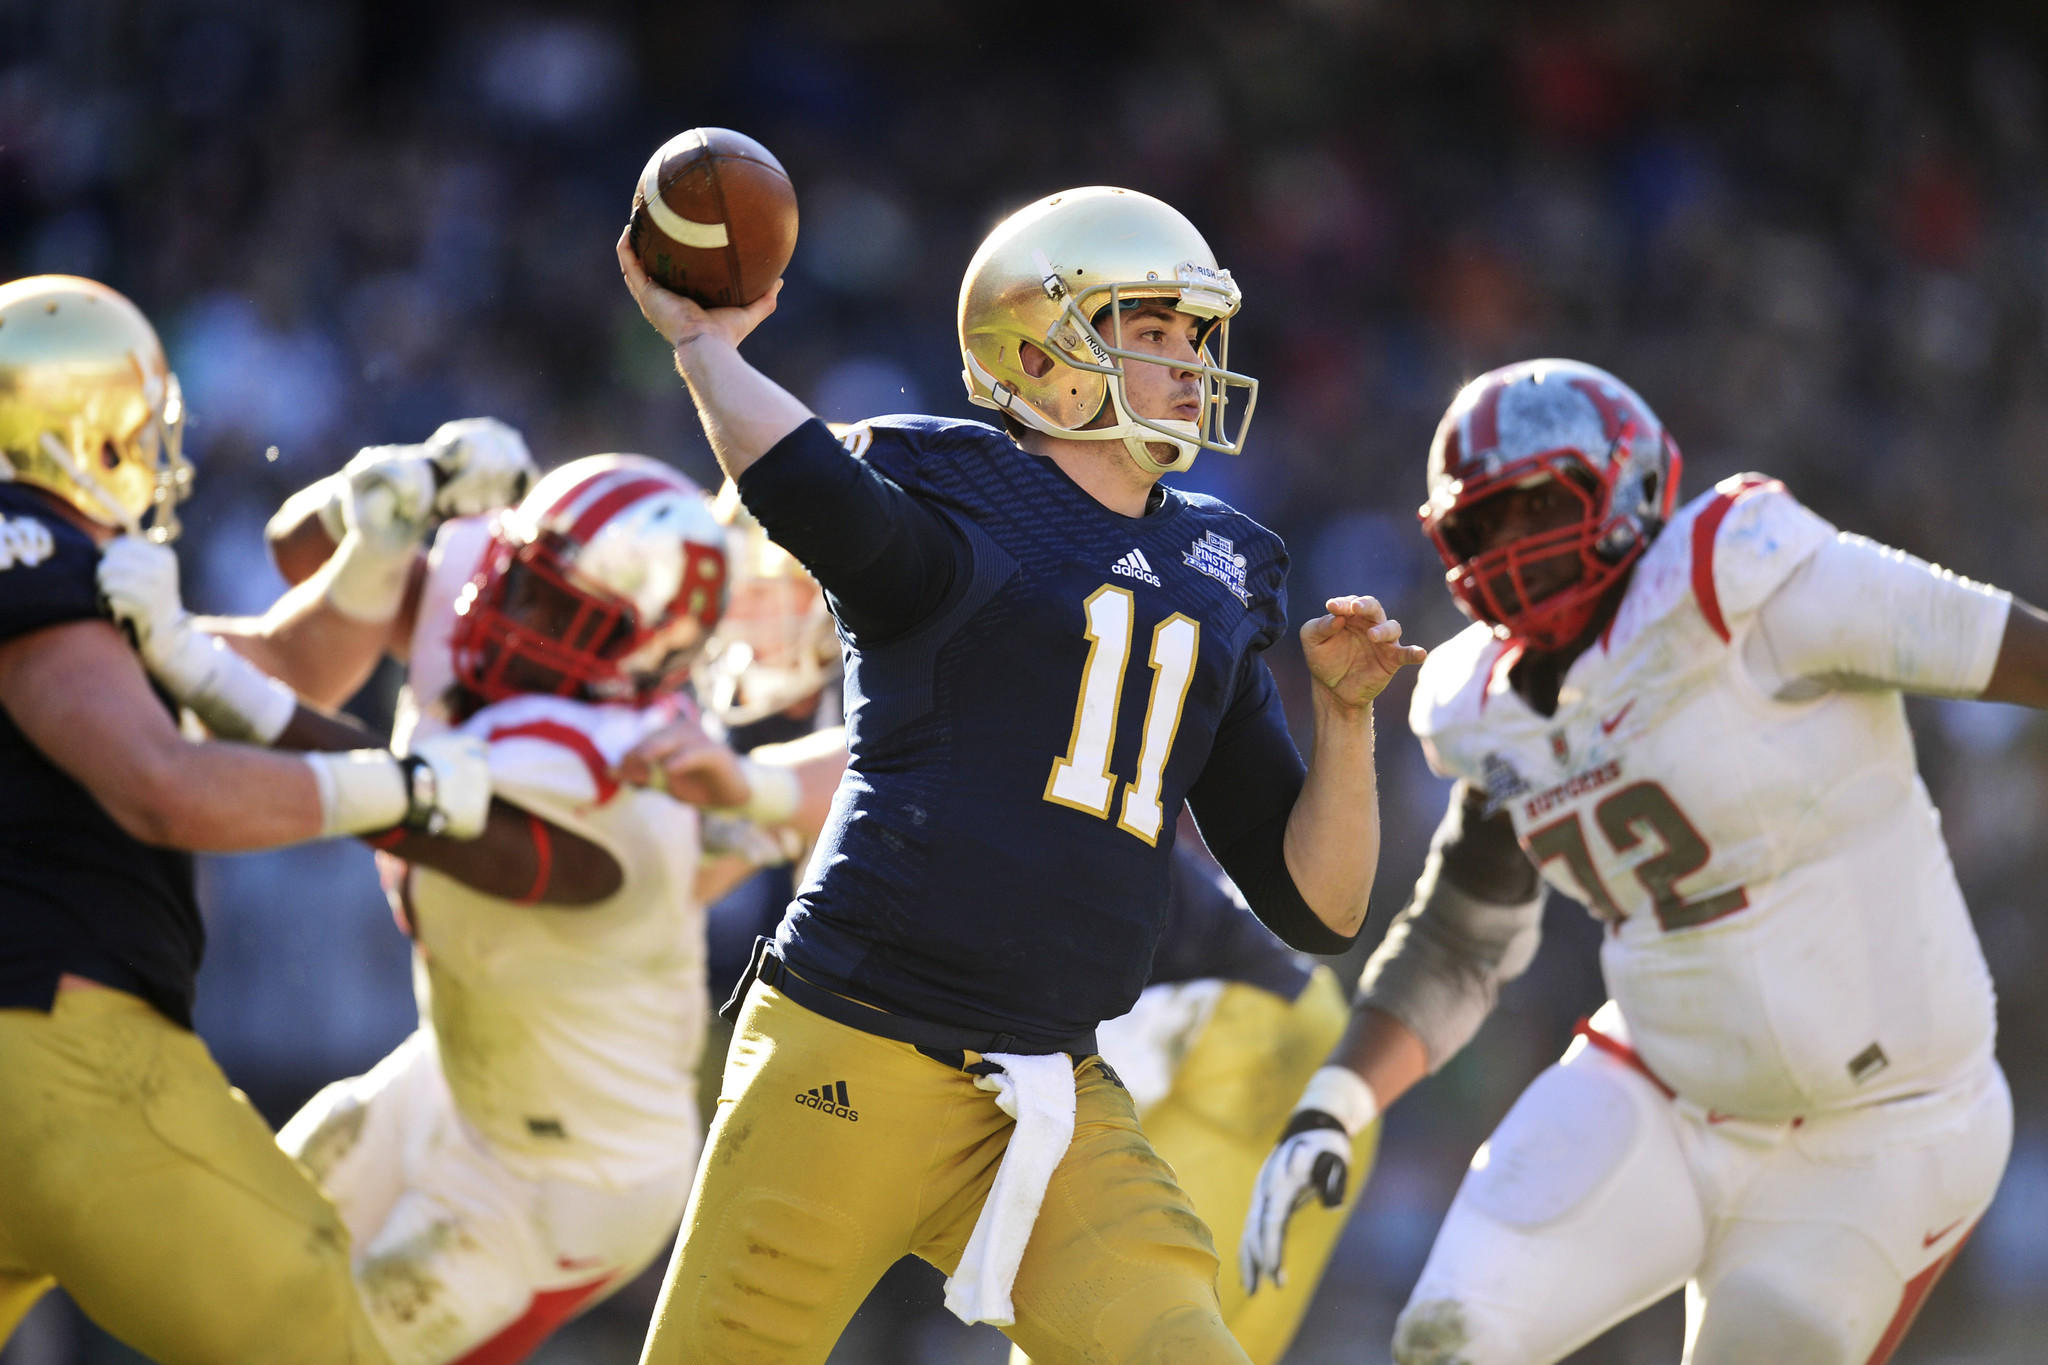 Notre Dame Fighting Irish quarterback Tommy Rees throws a pass against the Rutgers Scarlet Knights during the first half of the Pinstripe Bowl at Yankees Stadium.